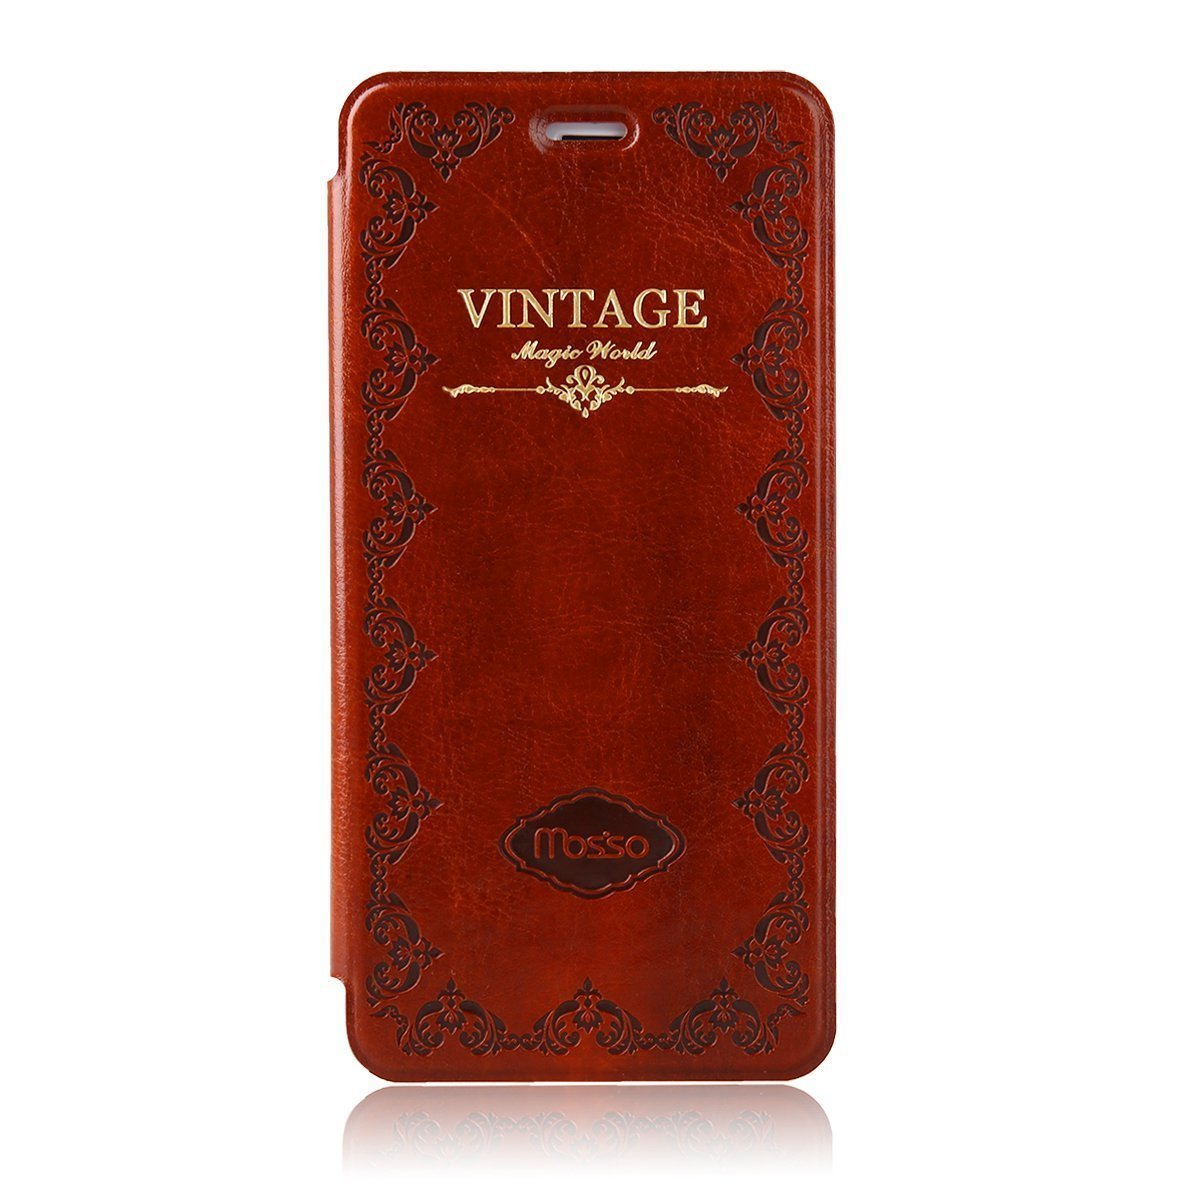 HandyGear Classic Vintage Book Style Flip Cover for iPhone 7 Plus Premium PU Leather Stand Case (iPhone 7 Plus Brown) by Handygear